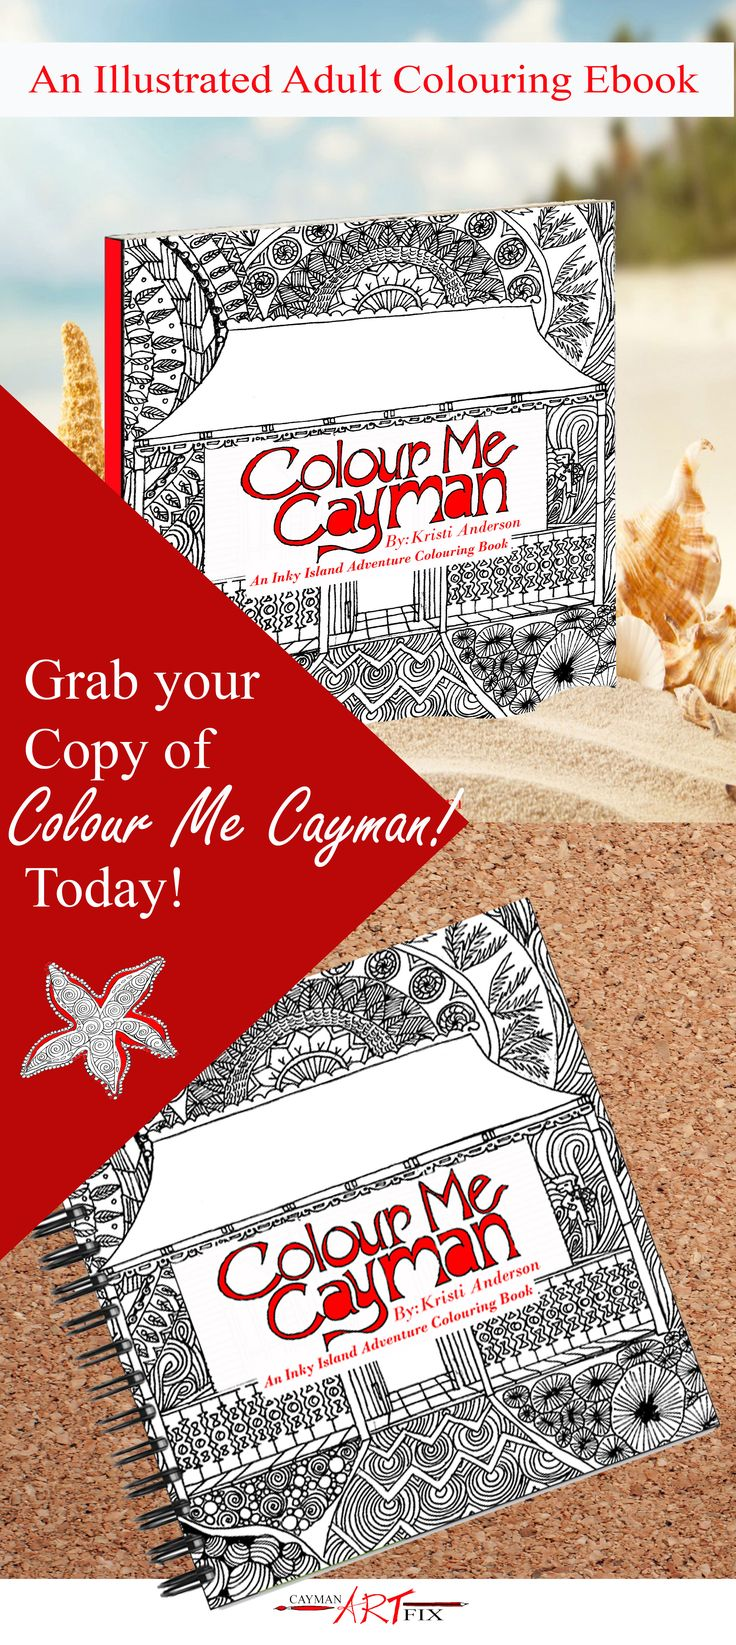 Our First Colouring Book is Live! Take a peek!